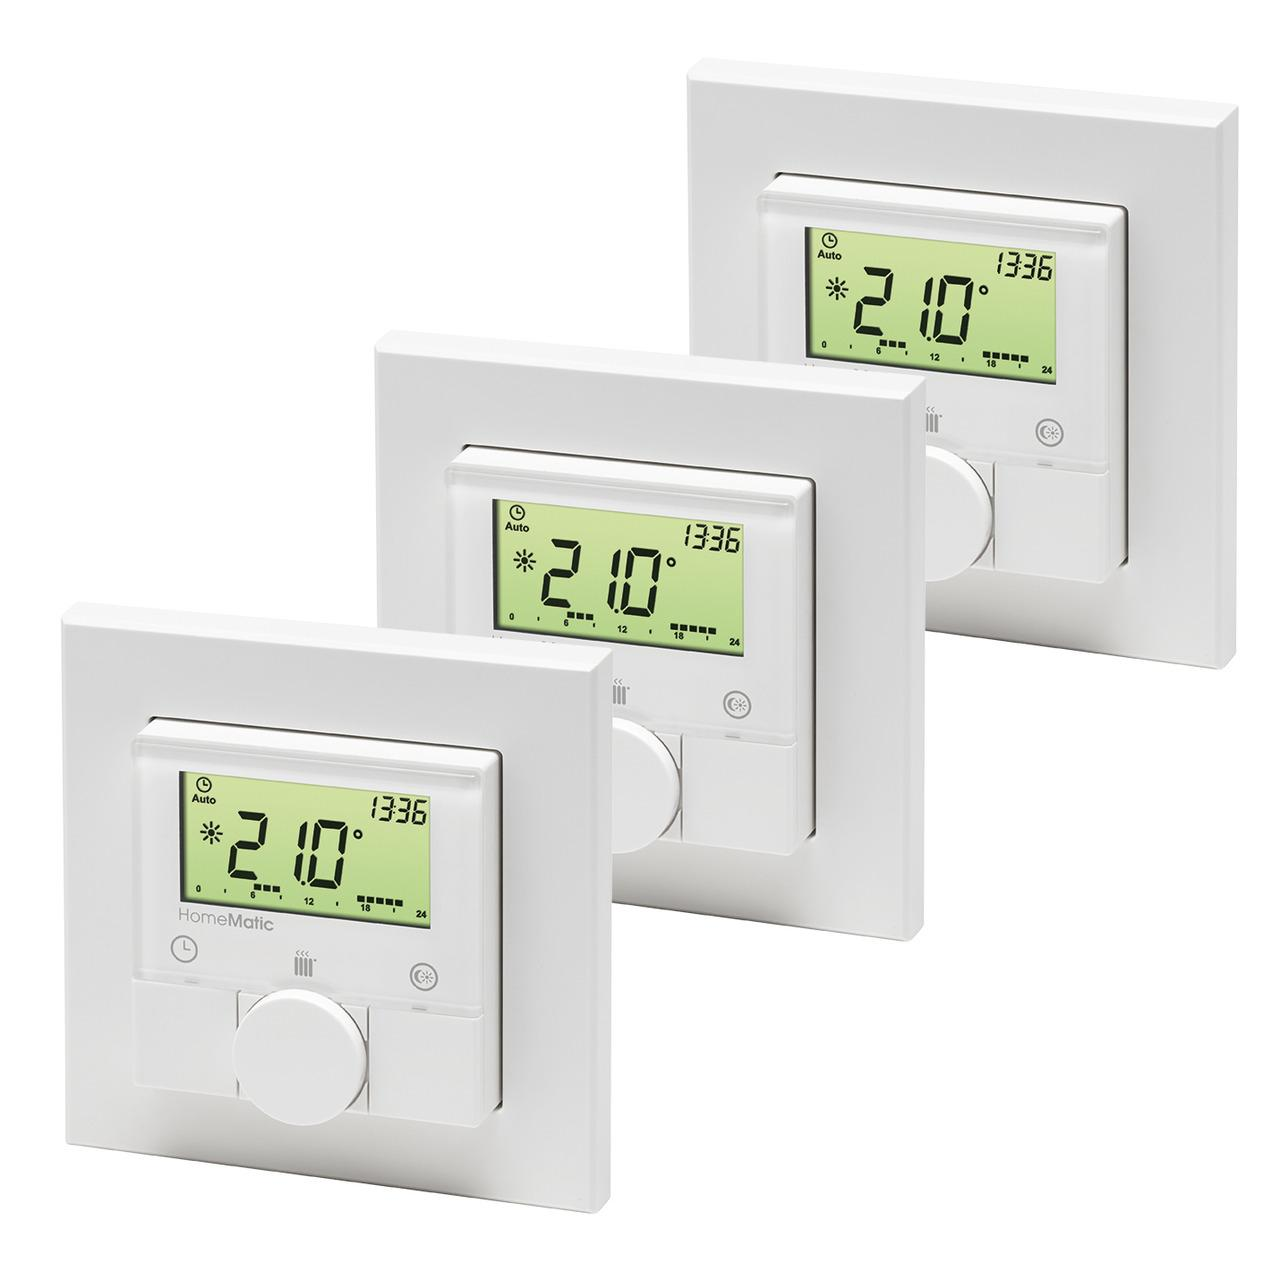 Homematic 3er-Set Funk-Wandthermostat HM-TC-IT-WM-W-EU für Smart Home / Hausautomation